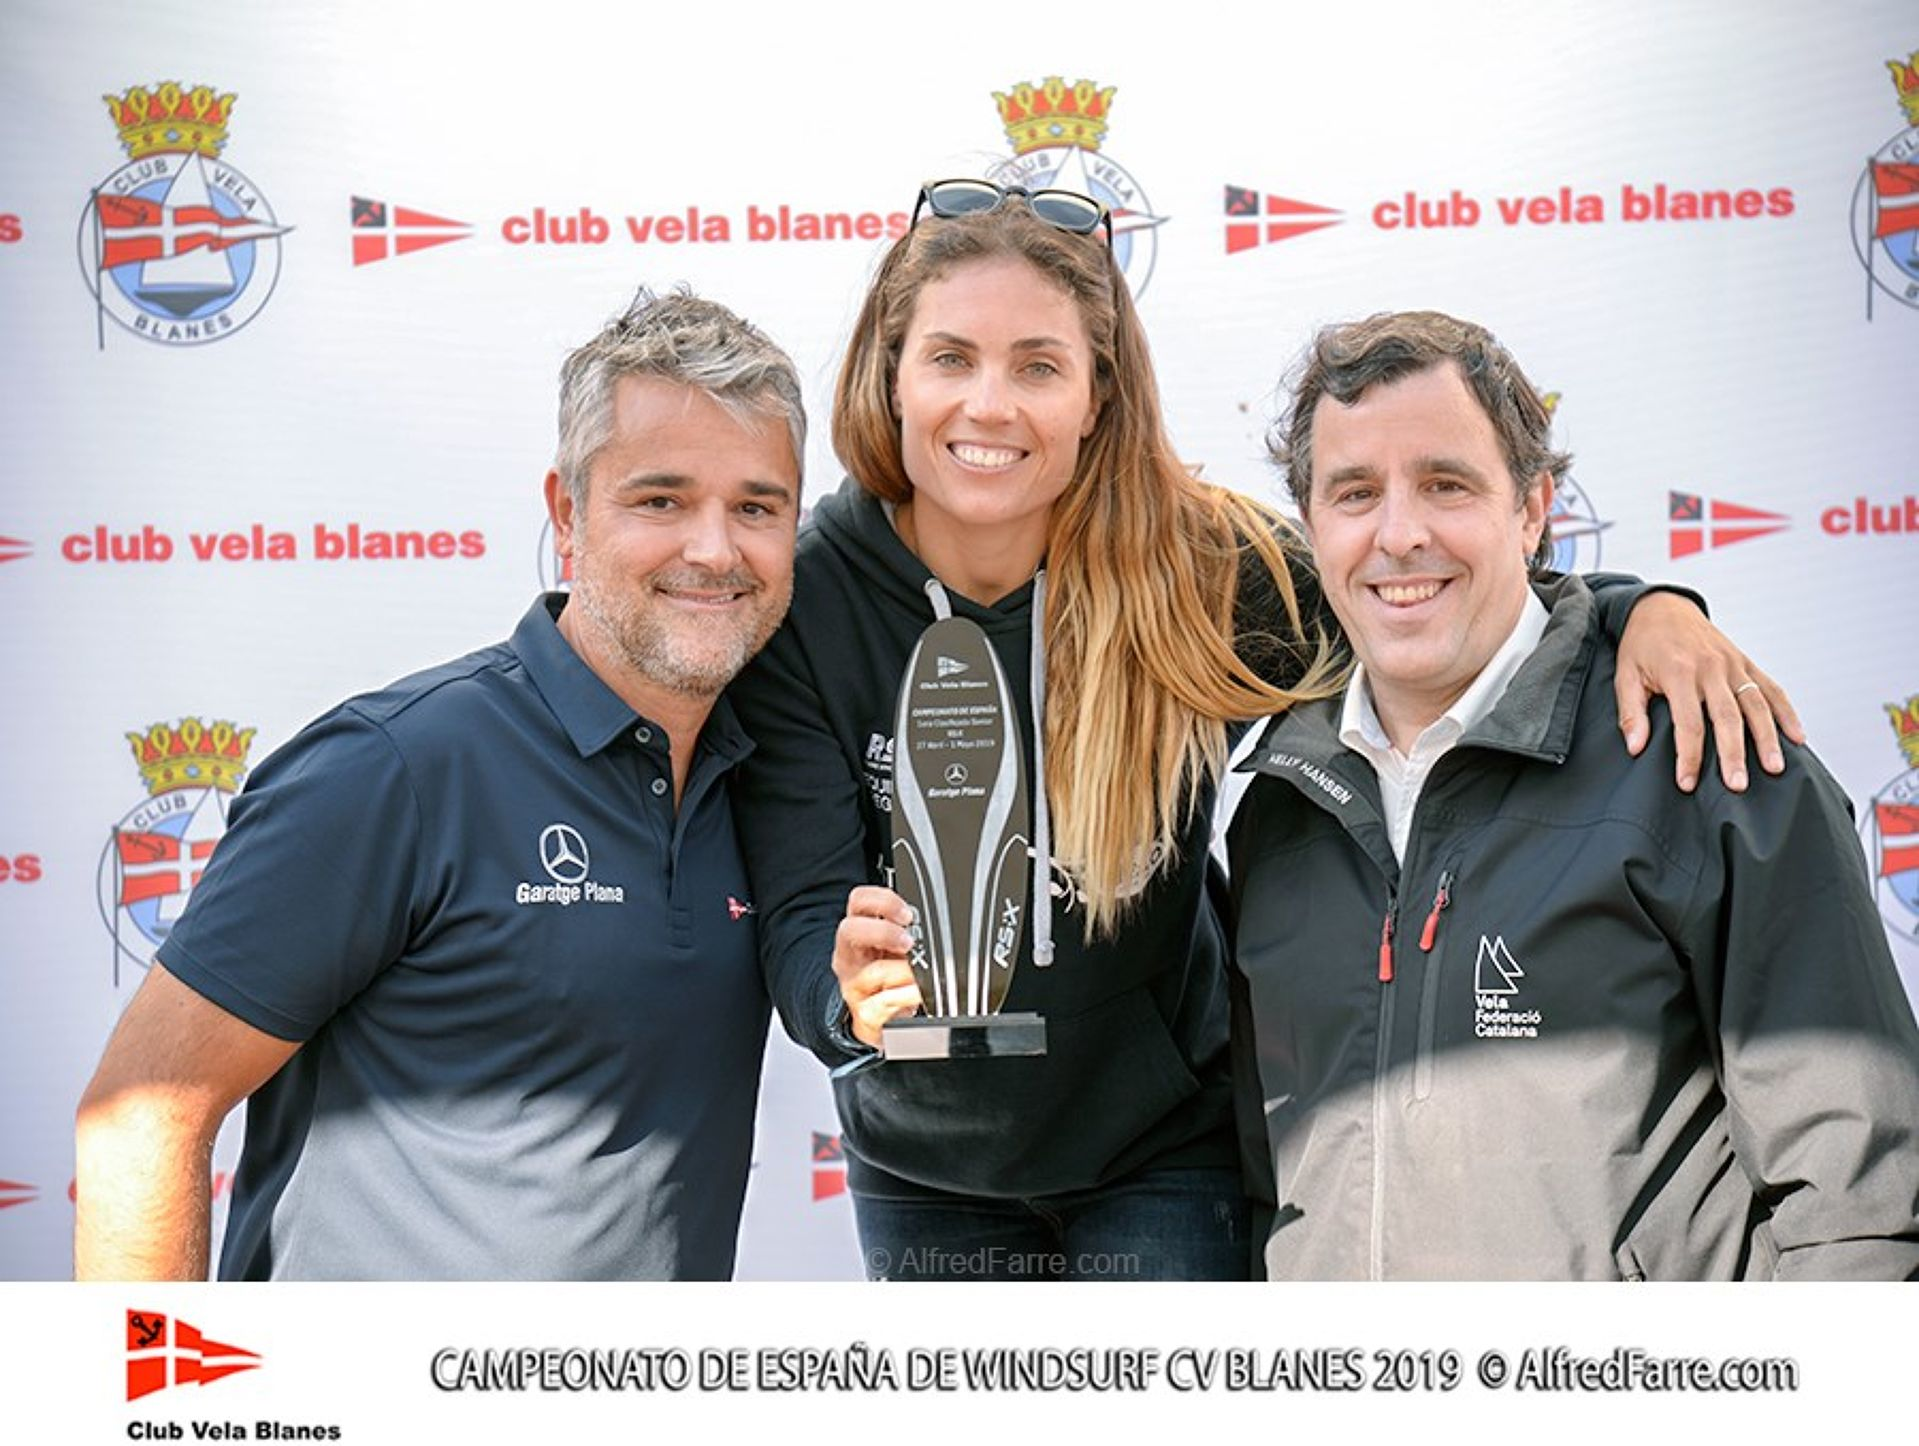 The Manchón brothers protagonists of the Spanish Windsurfing Championship in Blanes. Curro is proclaimed champion of Spain in Raceboard and Blanca dominates from beginning to end the RS: X Women.